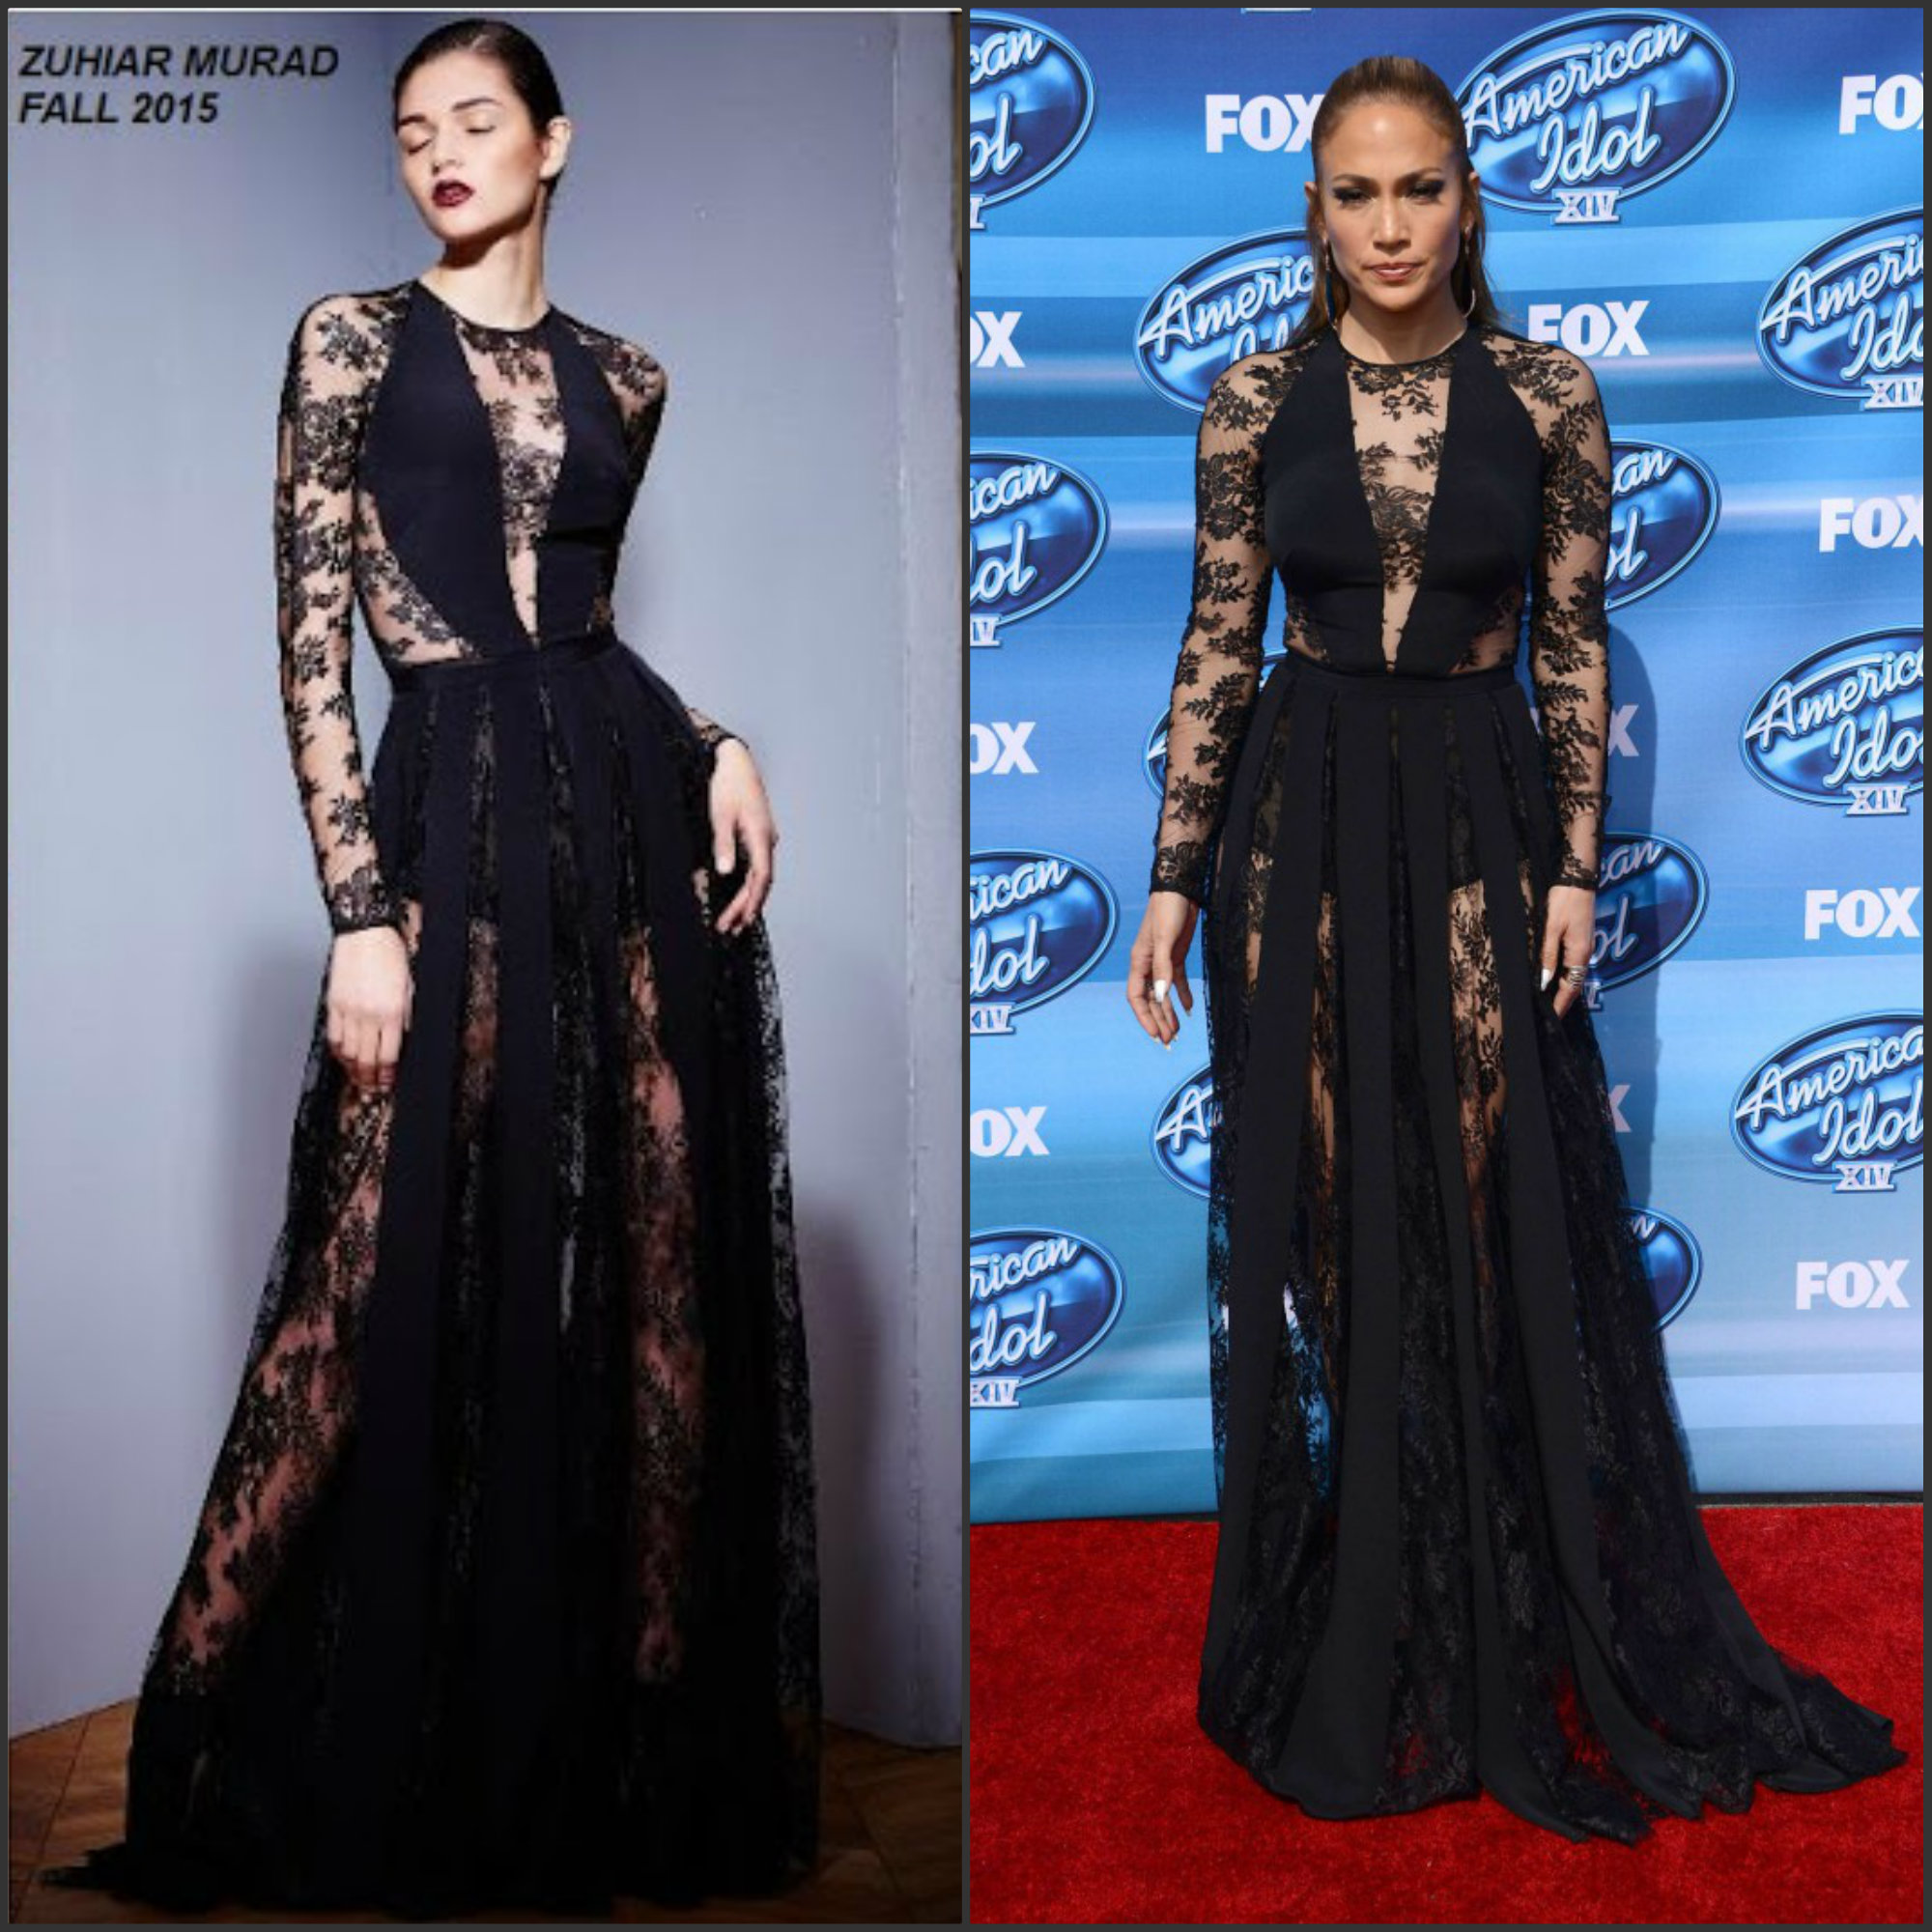 jennifer-lopez-in-zuhair-murad-on-the-american-idol-season-14-grand-finale-show